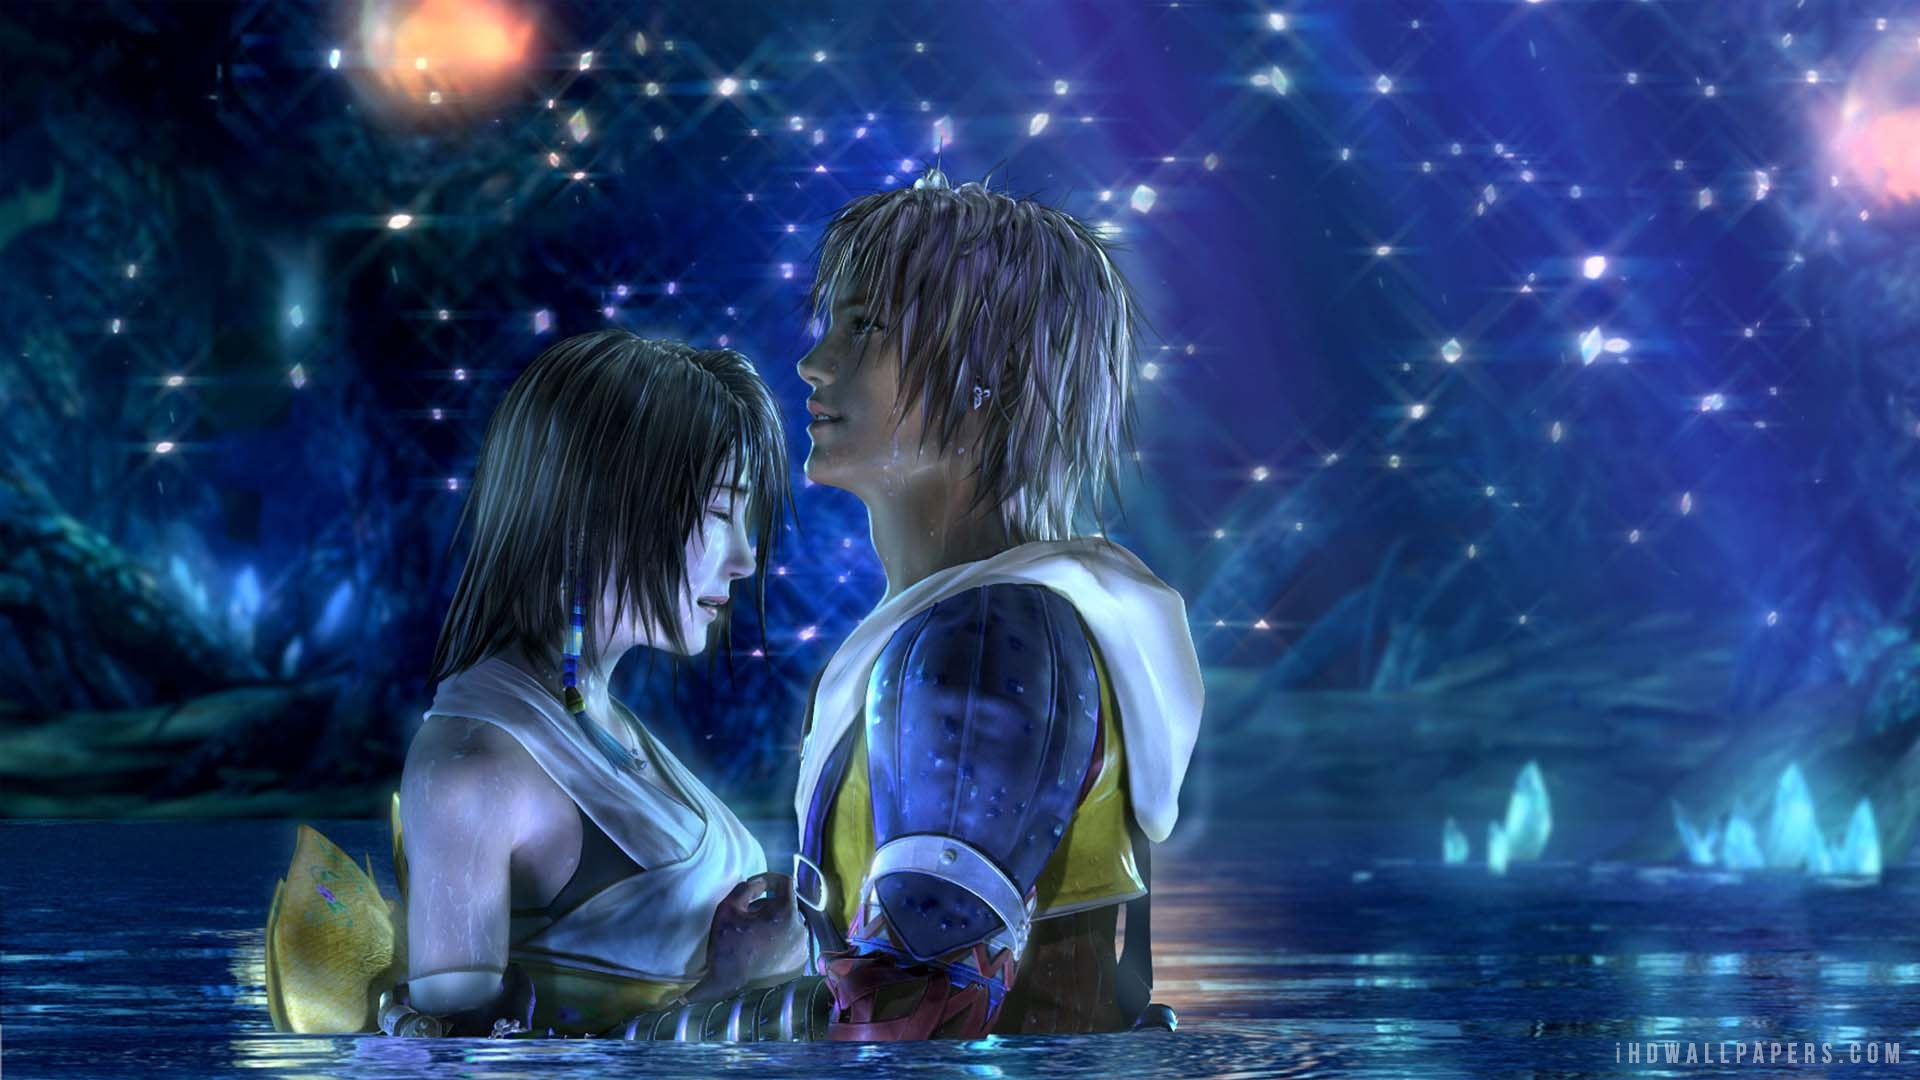 Final Fantasy X HD Wallpaper   iHD Wallpapers 1920x1080